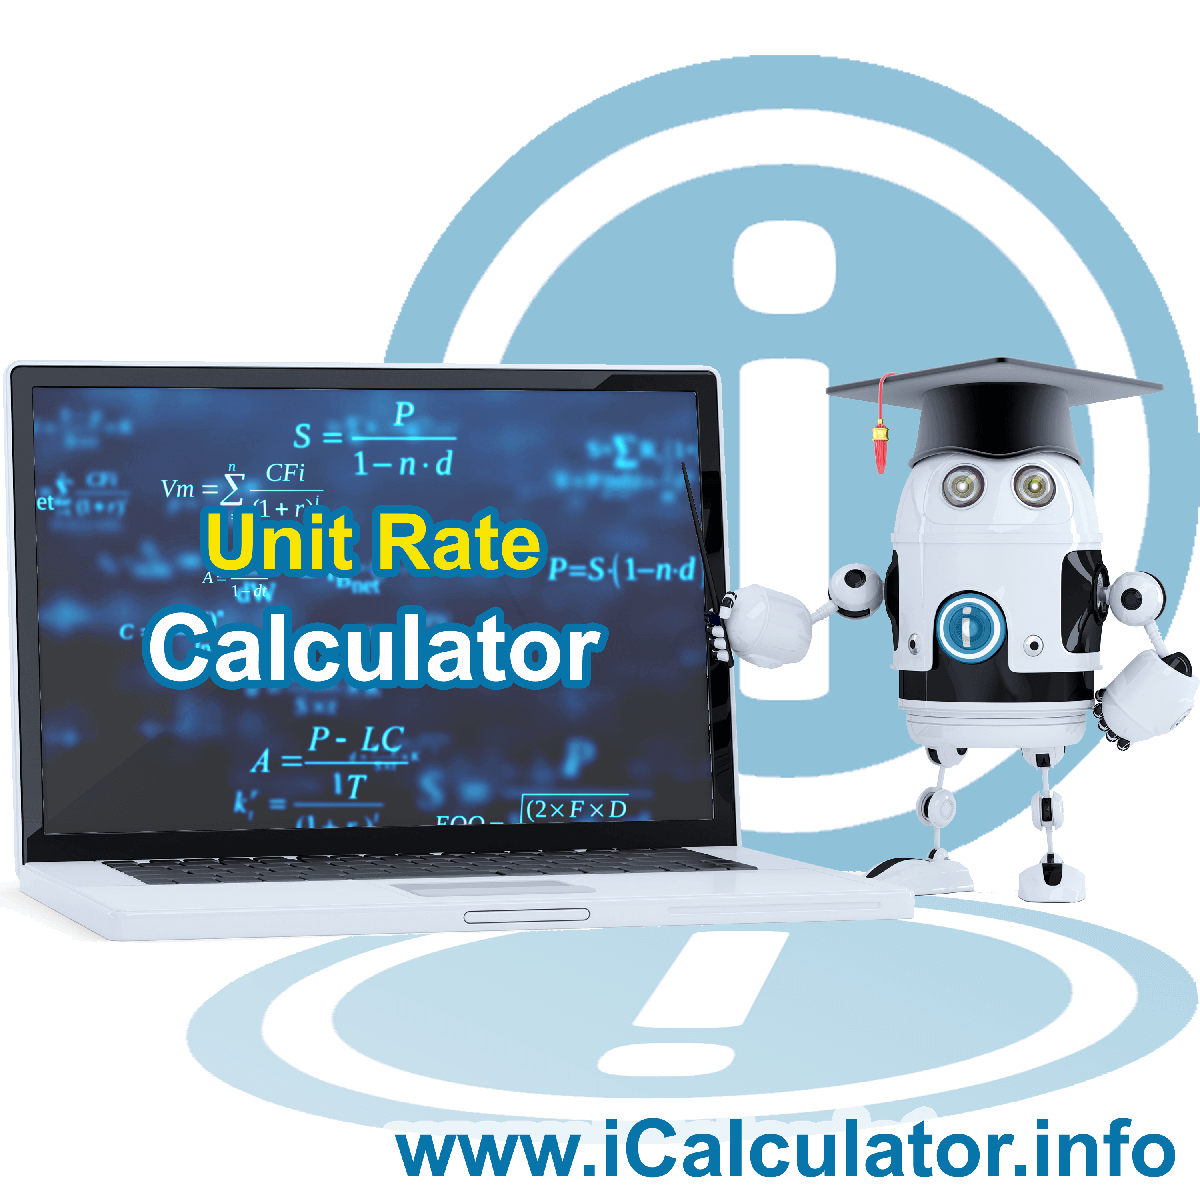 Unit Rate Calculator. This image provides details of how to calculate the unit rate using a calculator and notepad. By using the unit rate formula, the Unit Rate Calculator provides benchmark quantities and assessment of relative value in terms of share